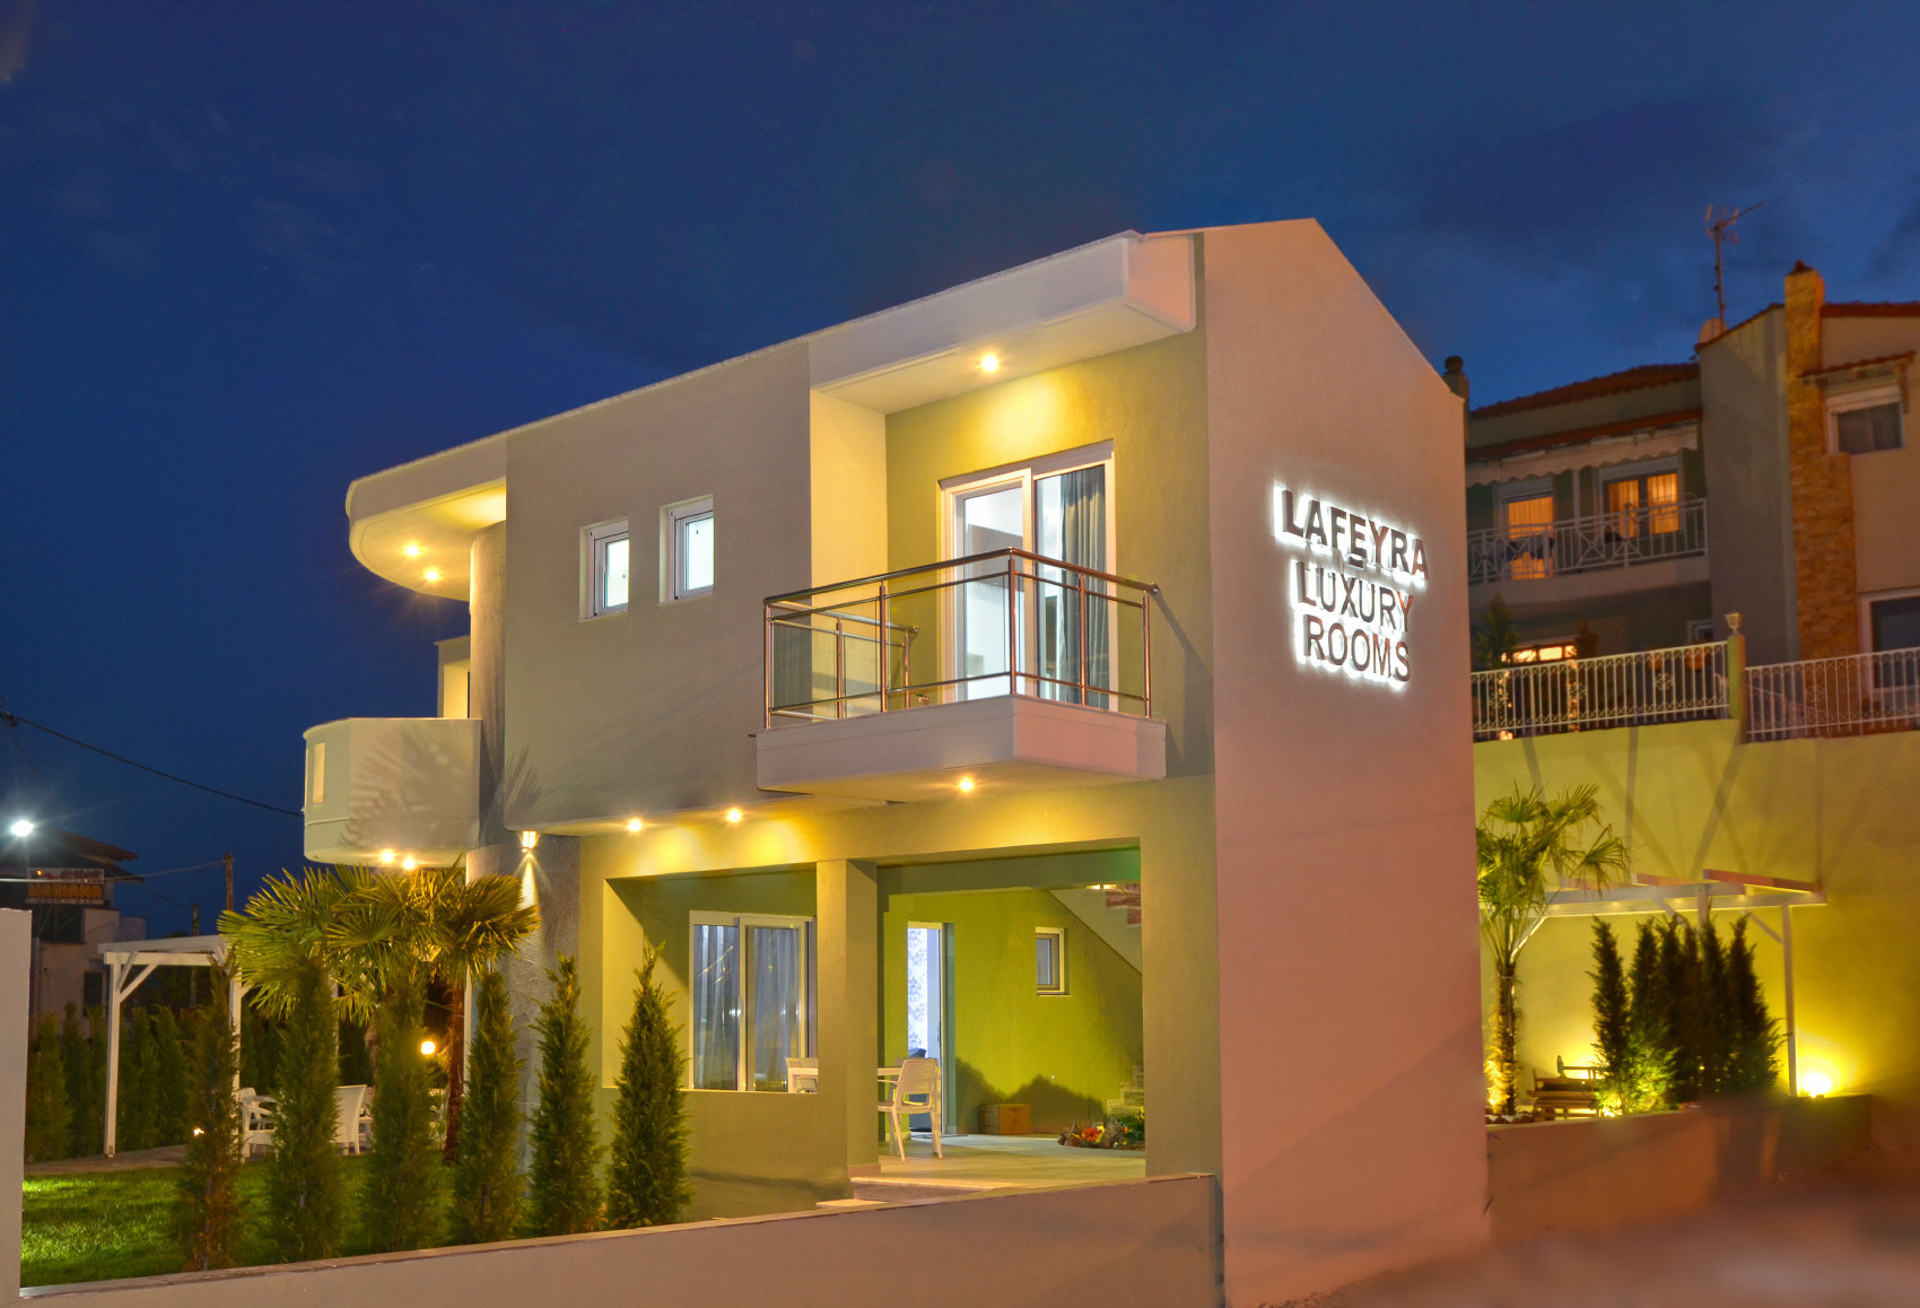 la feyra luxury rooms limenaria thassos 2